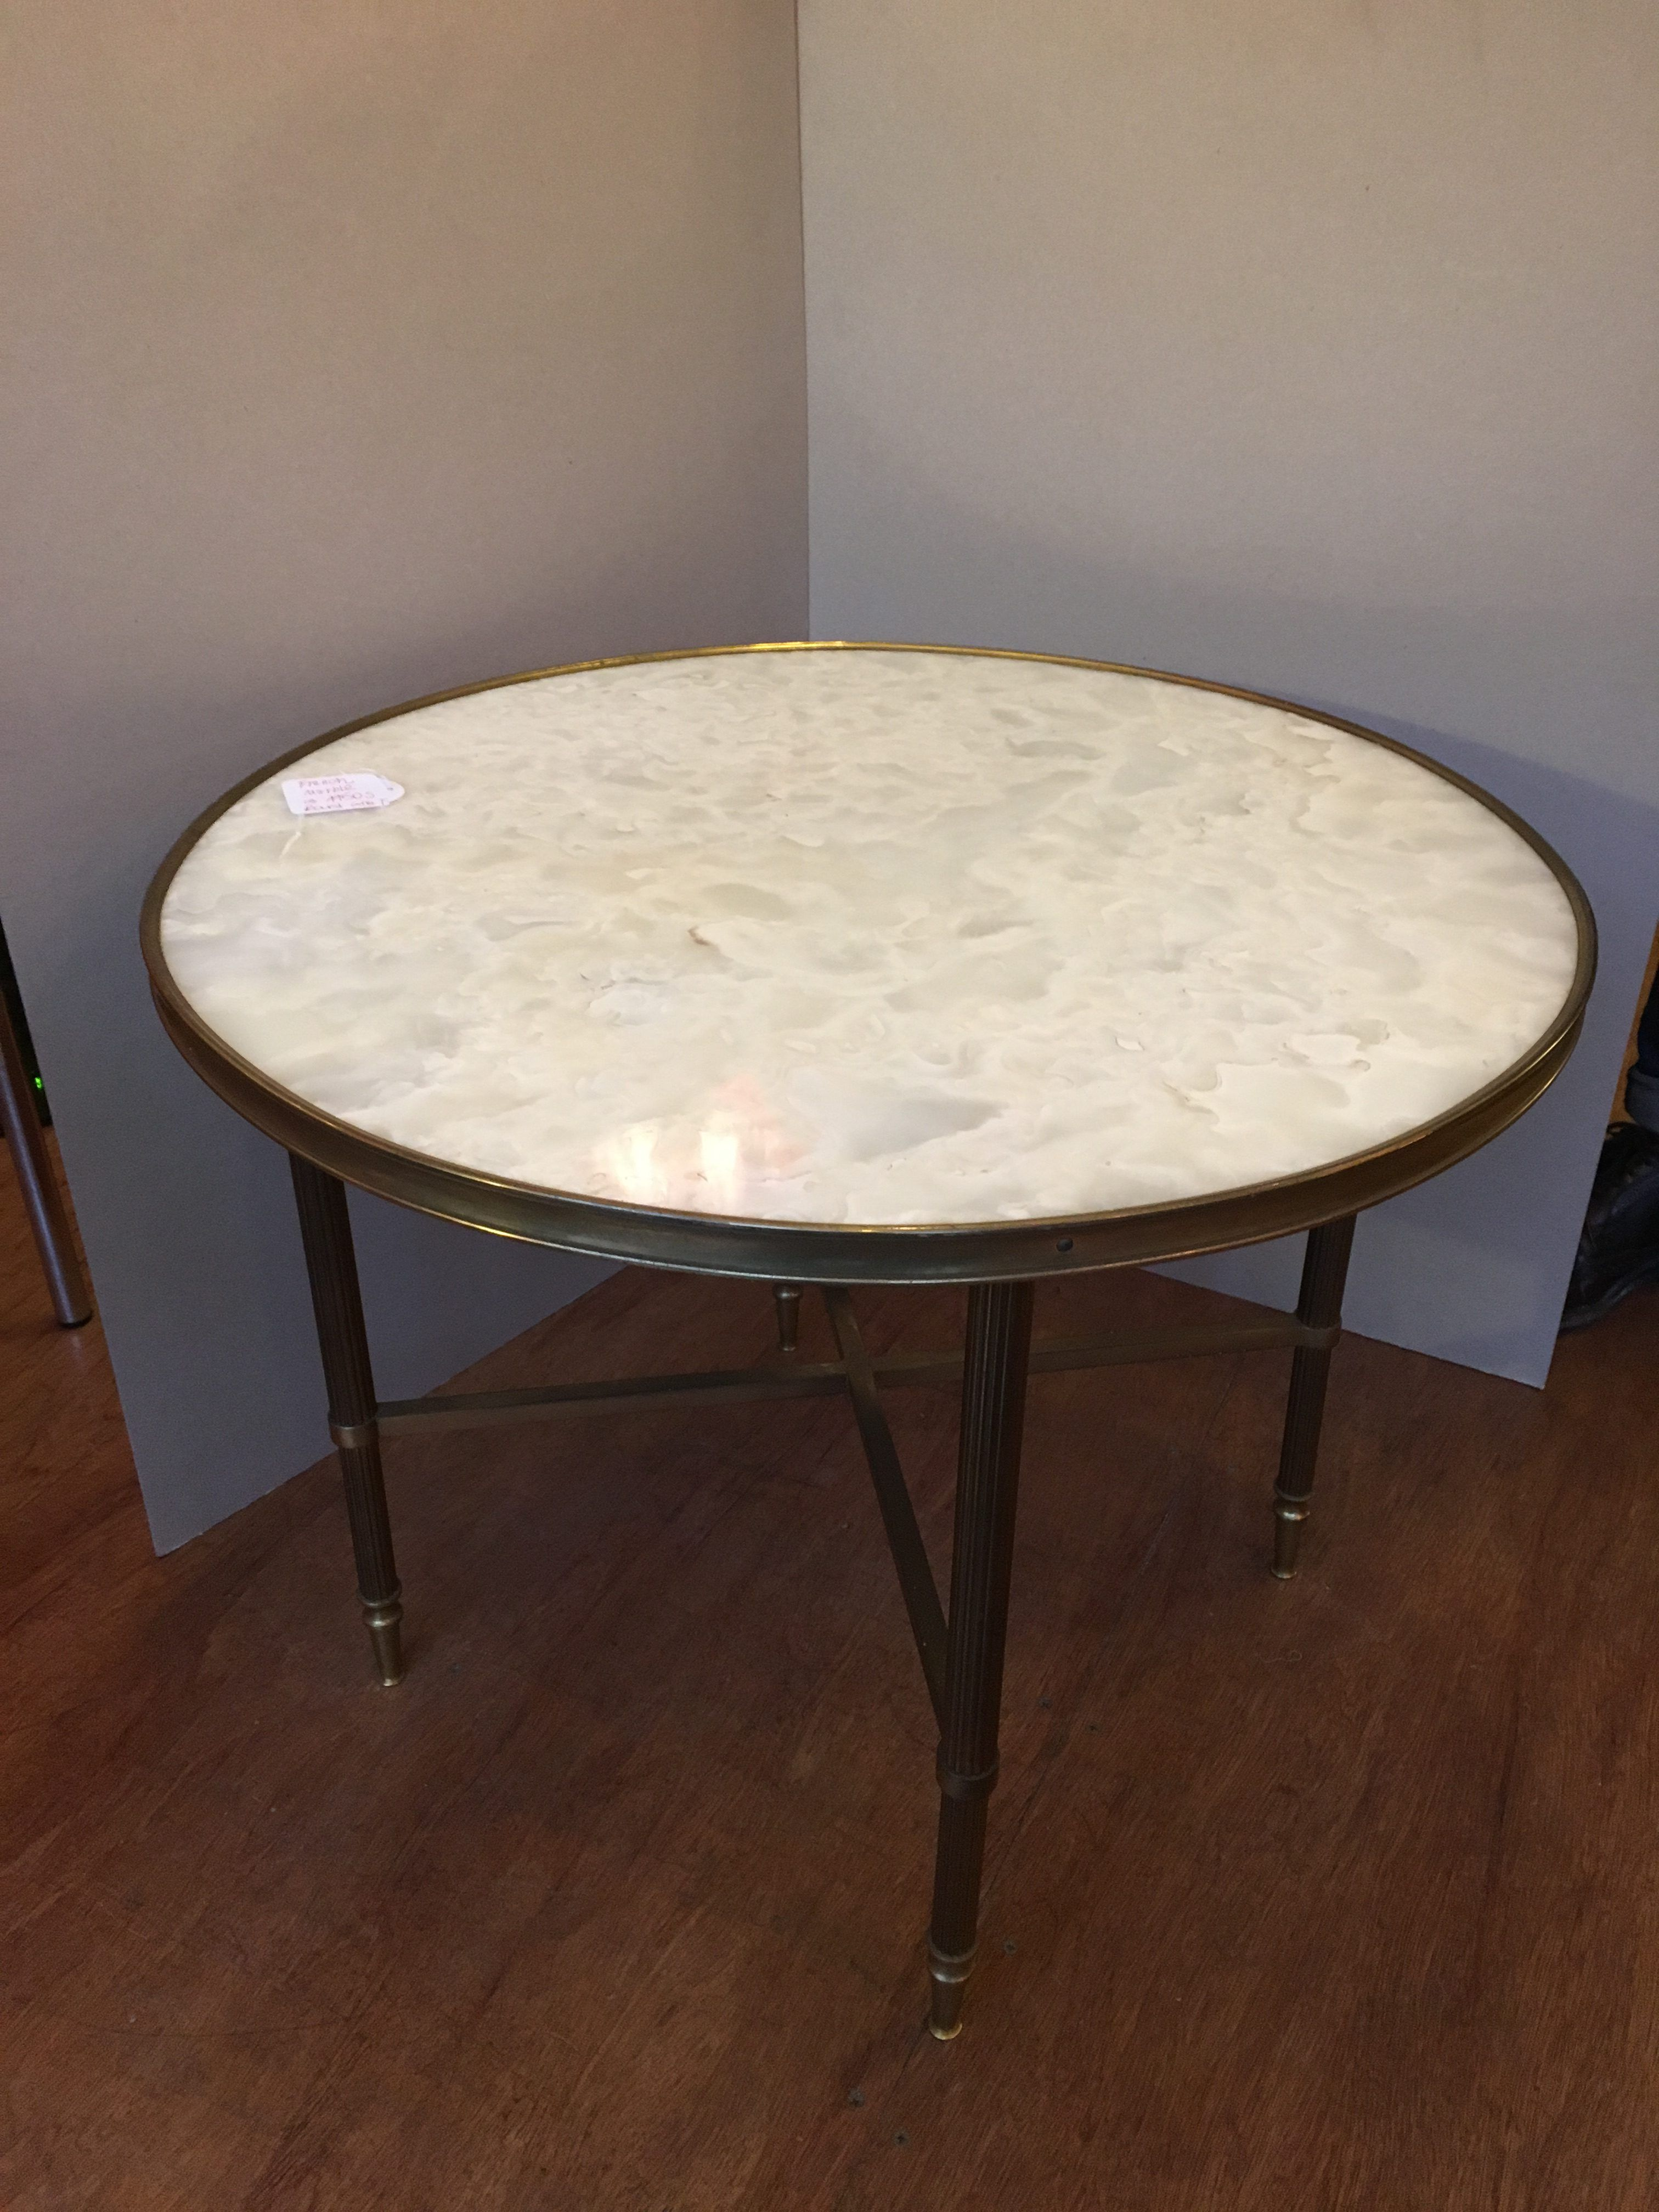 French Vintage Circular Marble Coffee Table With Solid Brass Legs